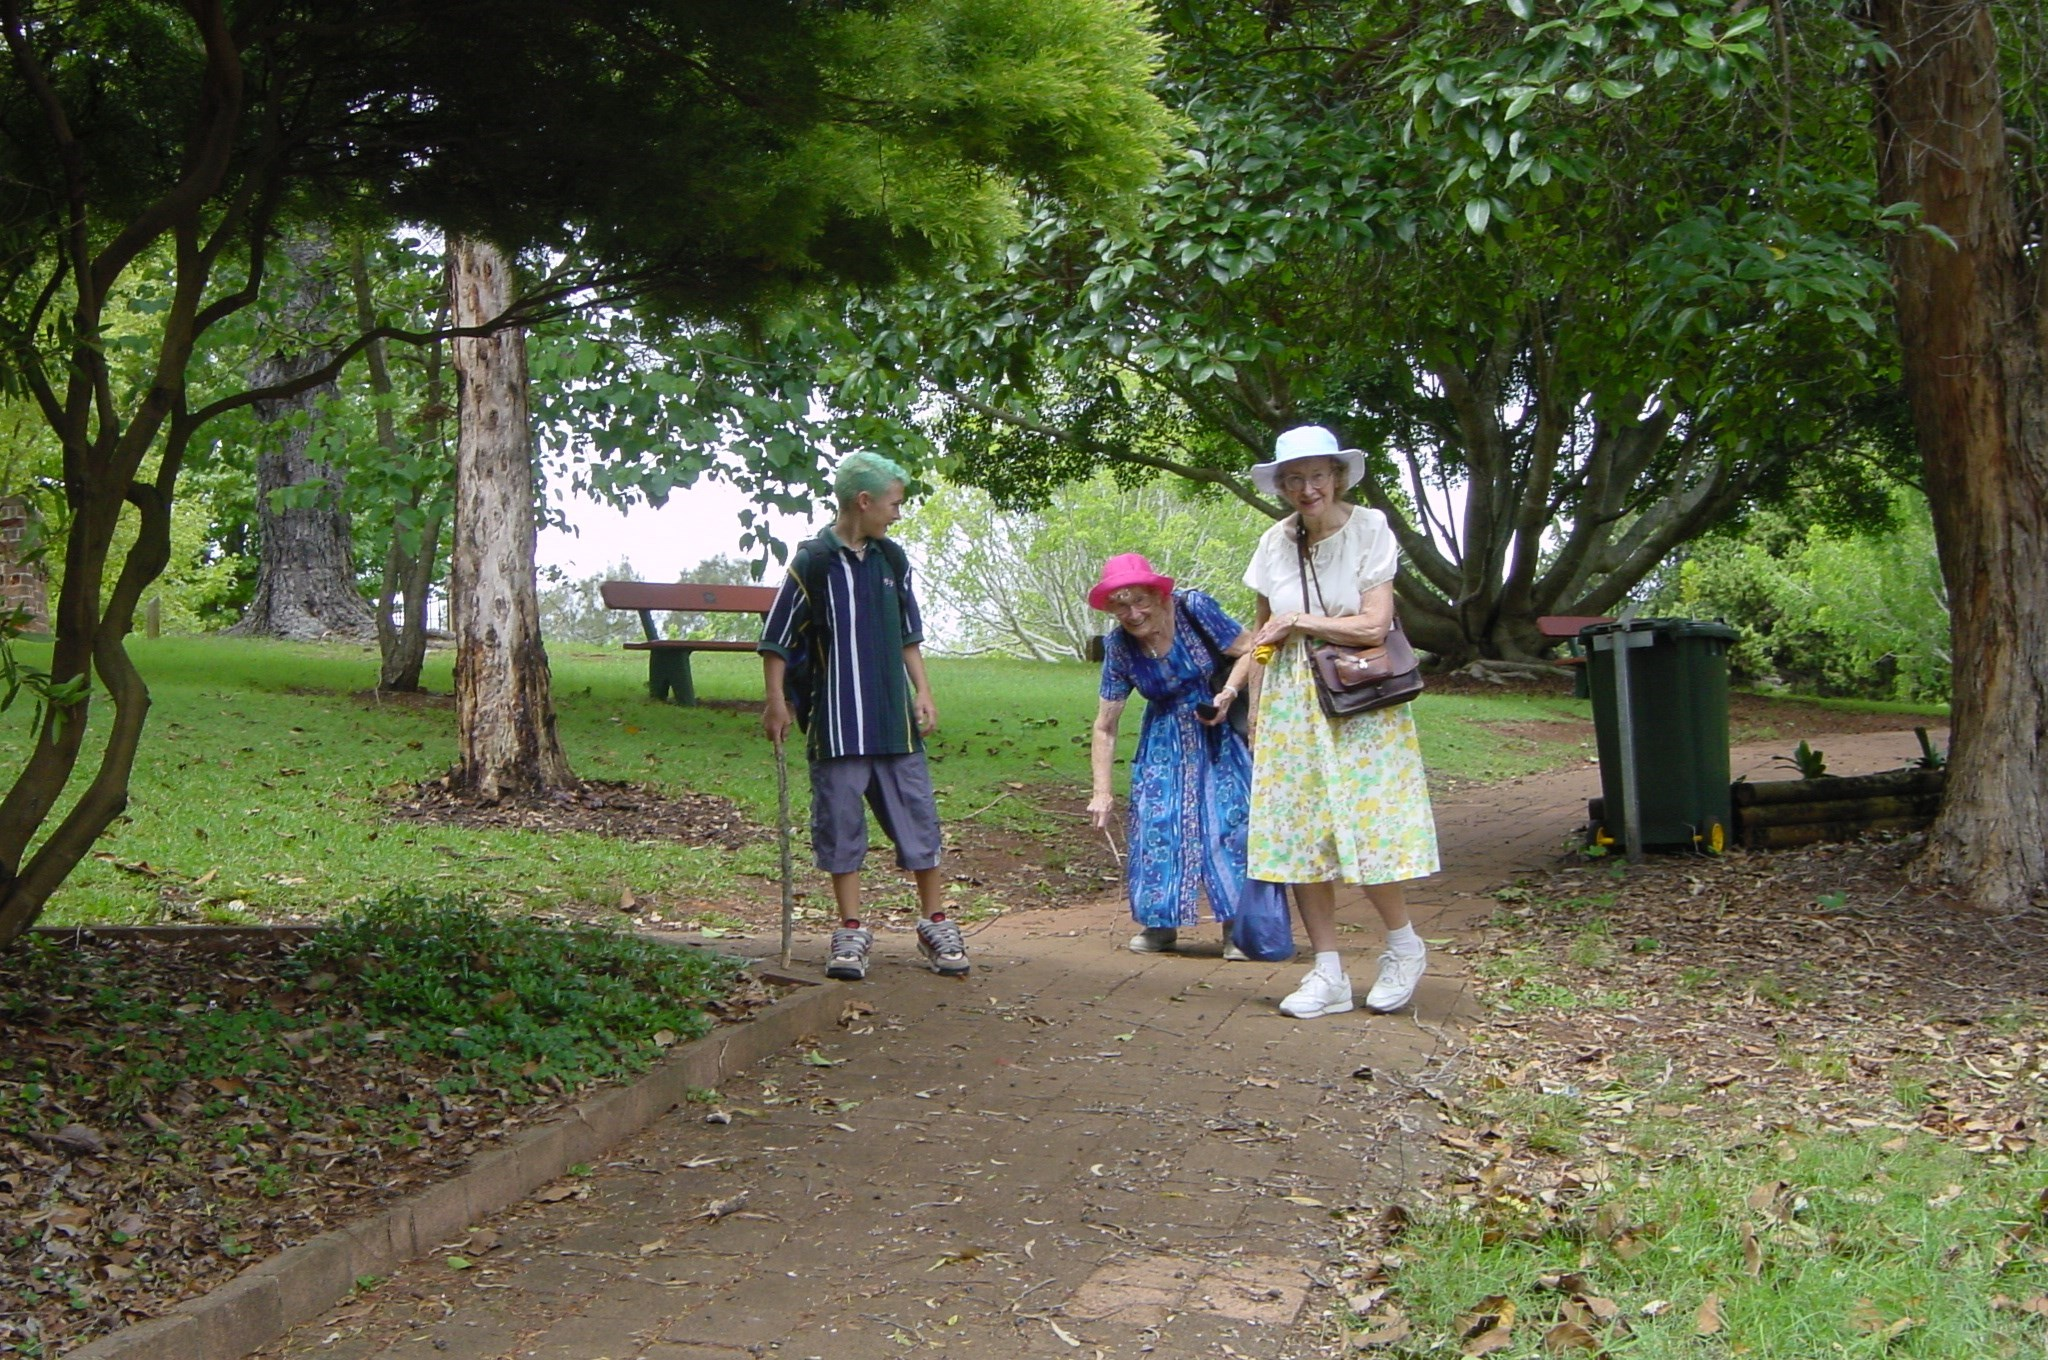 Davey, Millie pretending to be old, and Vera - in Port Macquarie